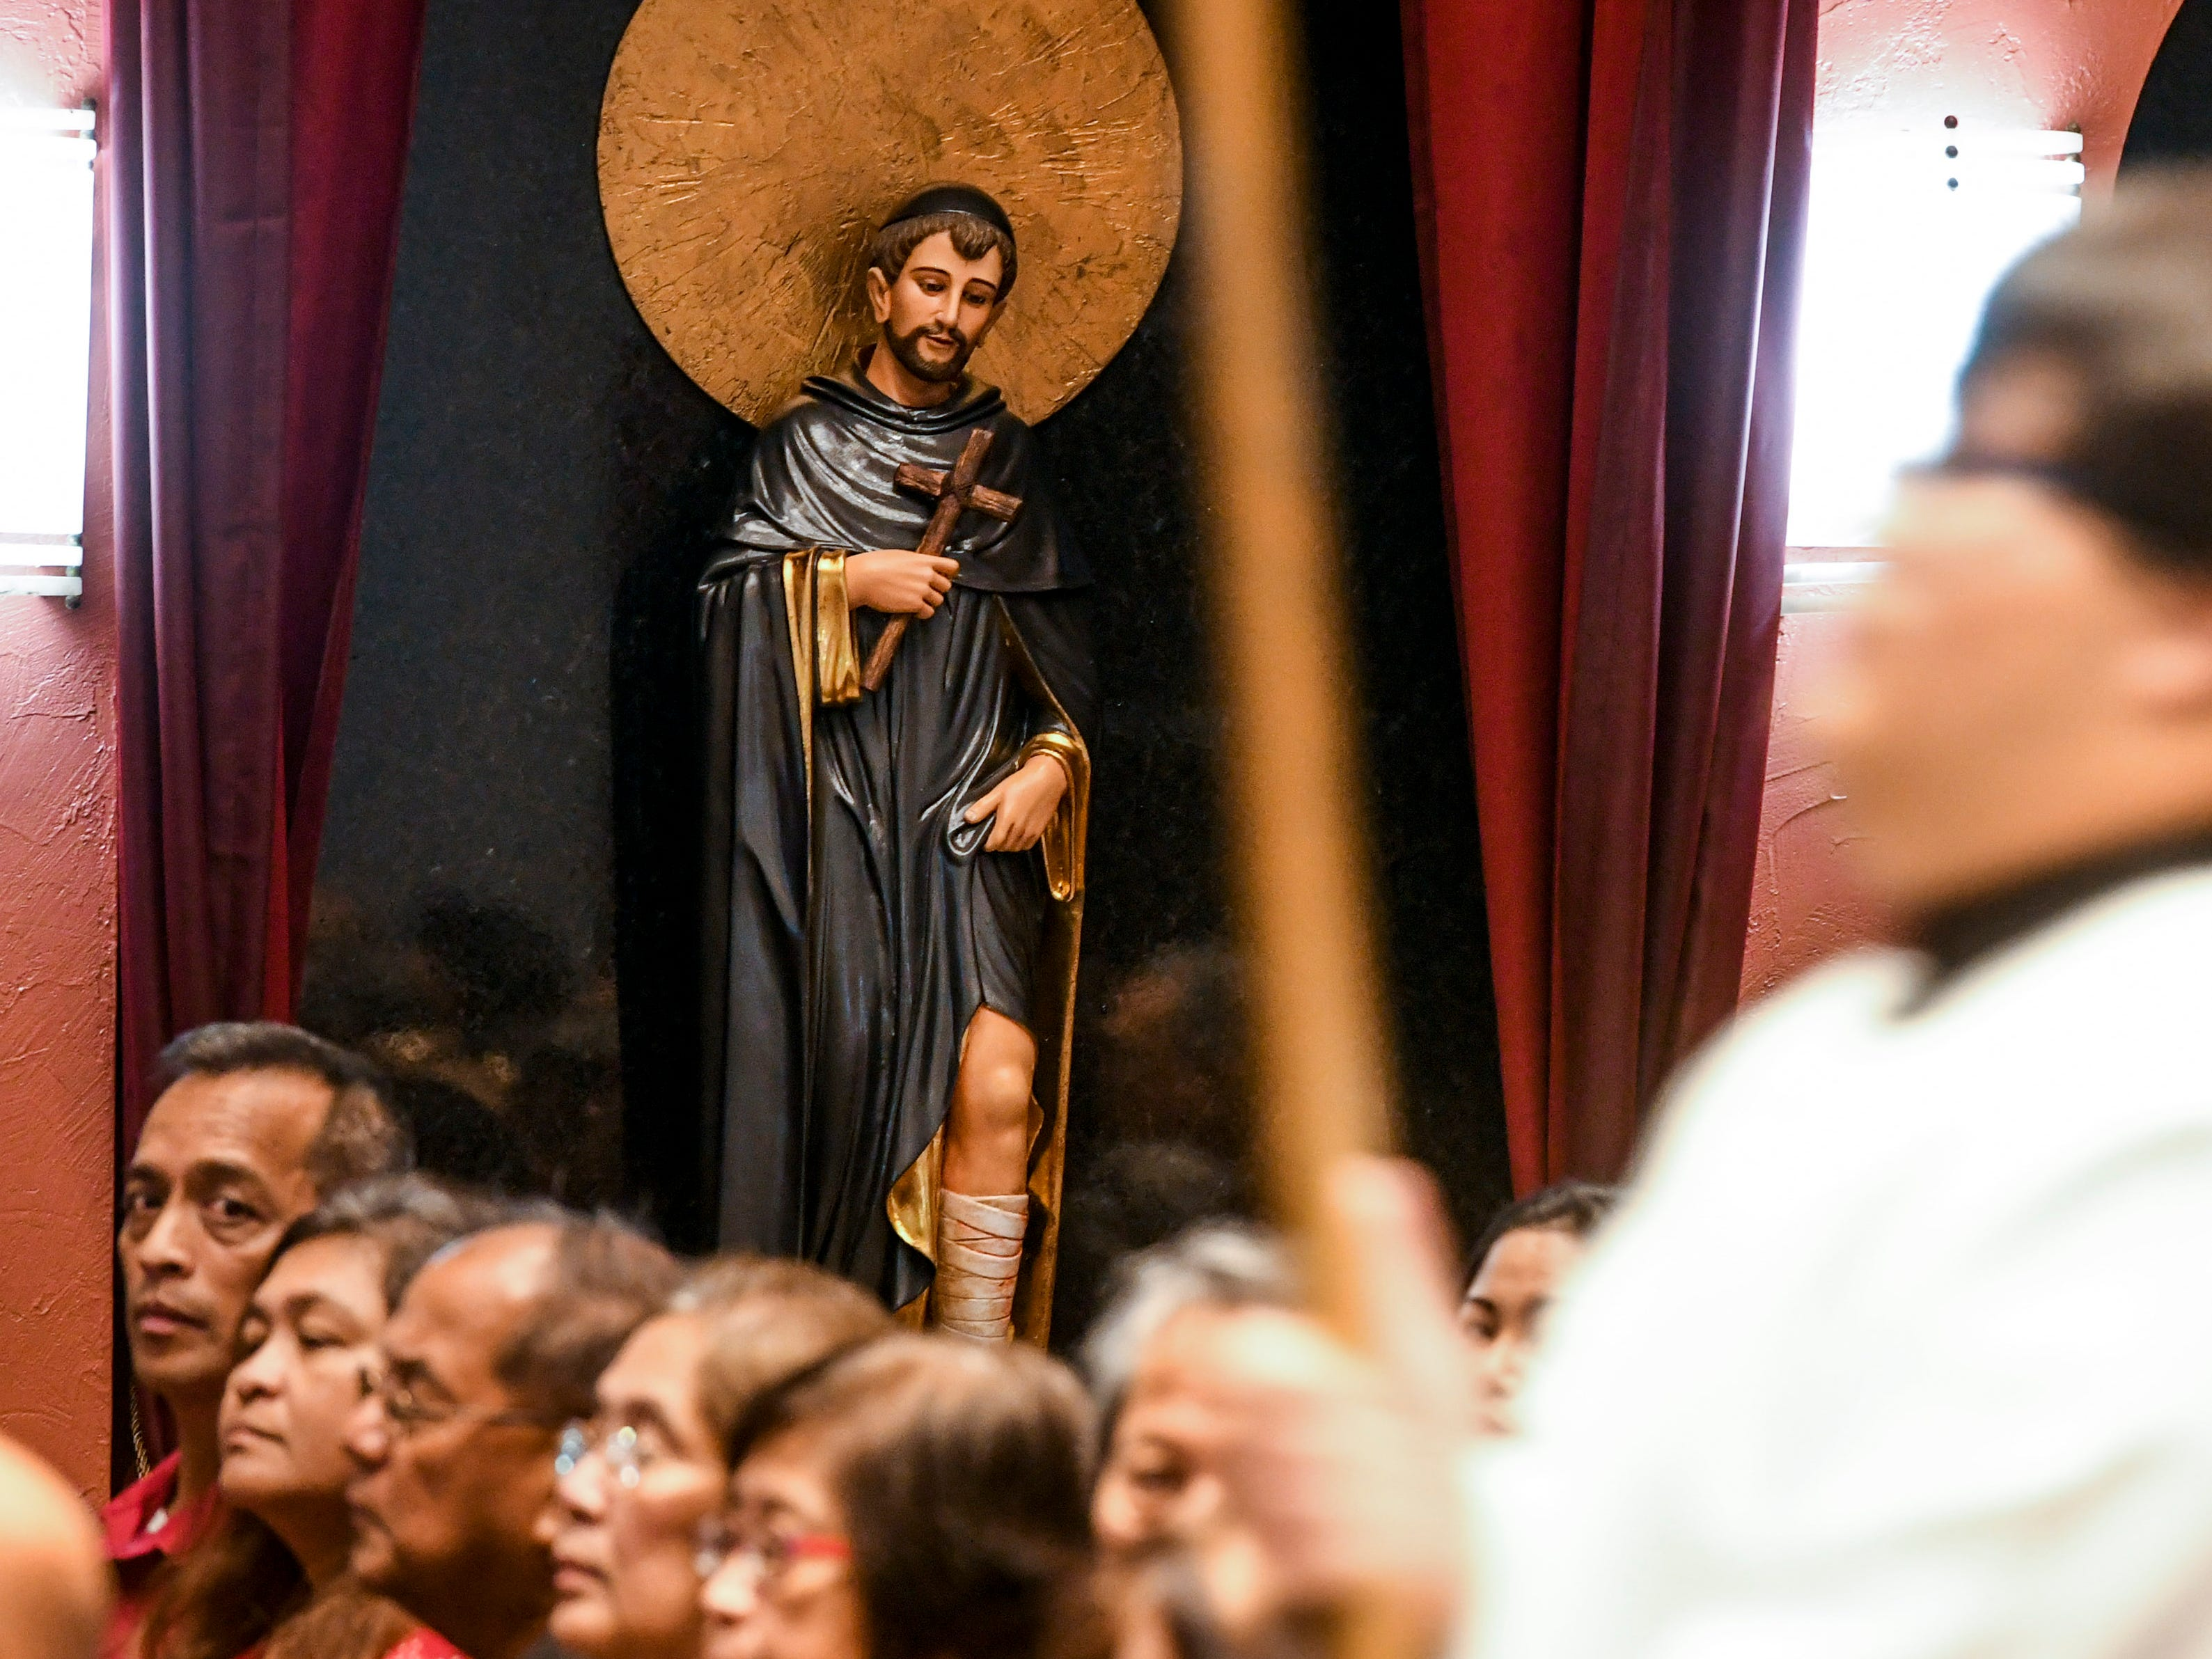 The newly enthroned statue of St. Peregrine stares out onto parishioners during the inaugural devotion Mass to the saint at the Dulce Nombre de Maria Cathedral-Basilica in Hagåtña on Wednesday, Jan. 9, 2019. The Archdiocese of Agaña announced that Mass will be offered at 6:00 p.m. on Wednesdays for cancer patients, their families and all who would like to participate in celebration of the Eucharist and prayers. Confession will also be offered before each Mass, as well as an anointing of the sick, said Monsignor James Benavente, pastor of the Cathedral-Basilica.